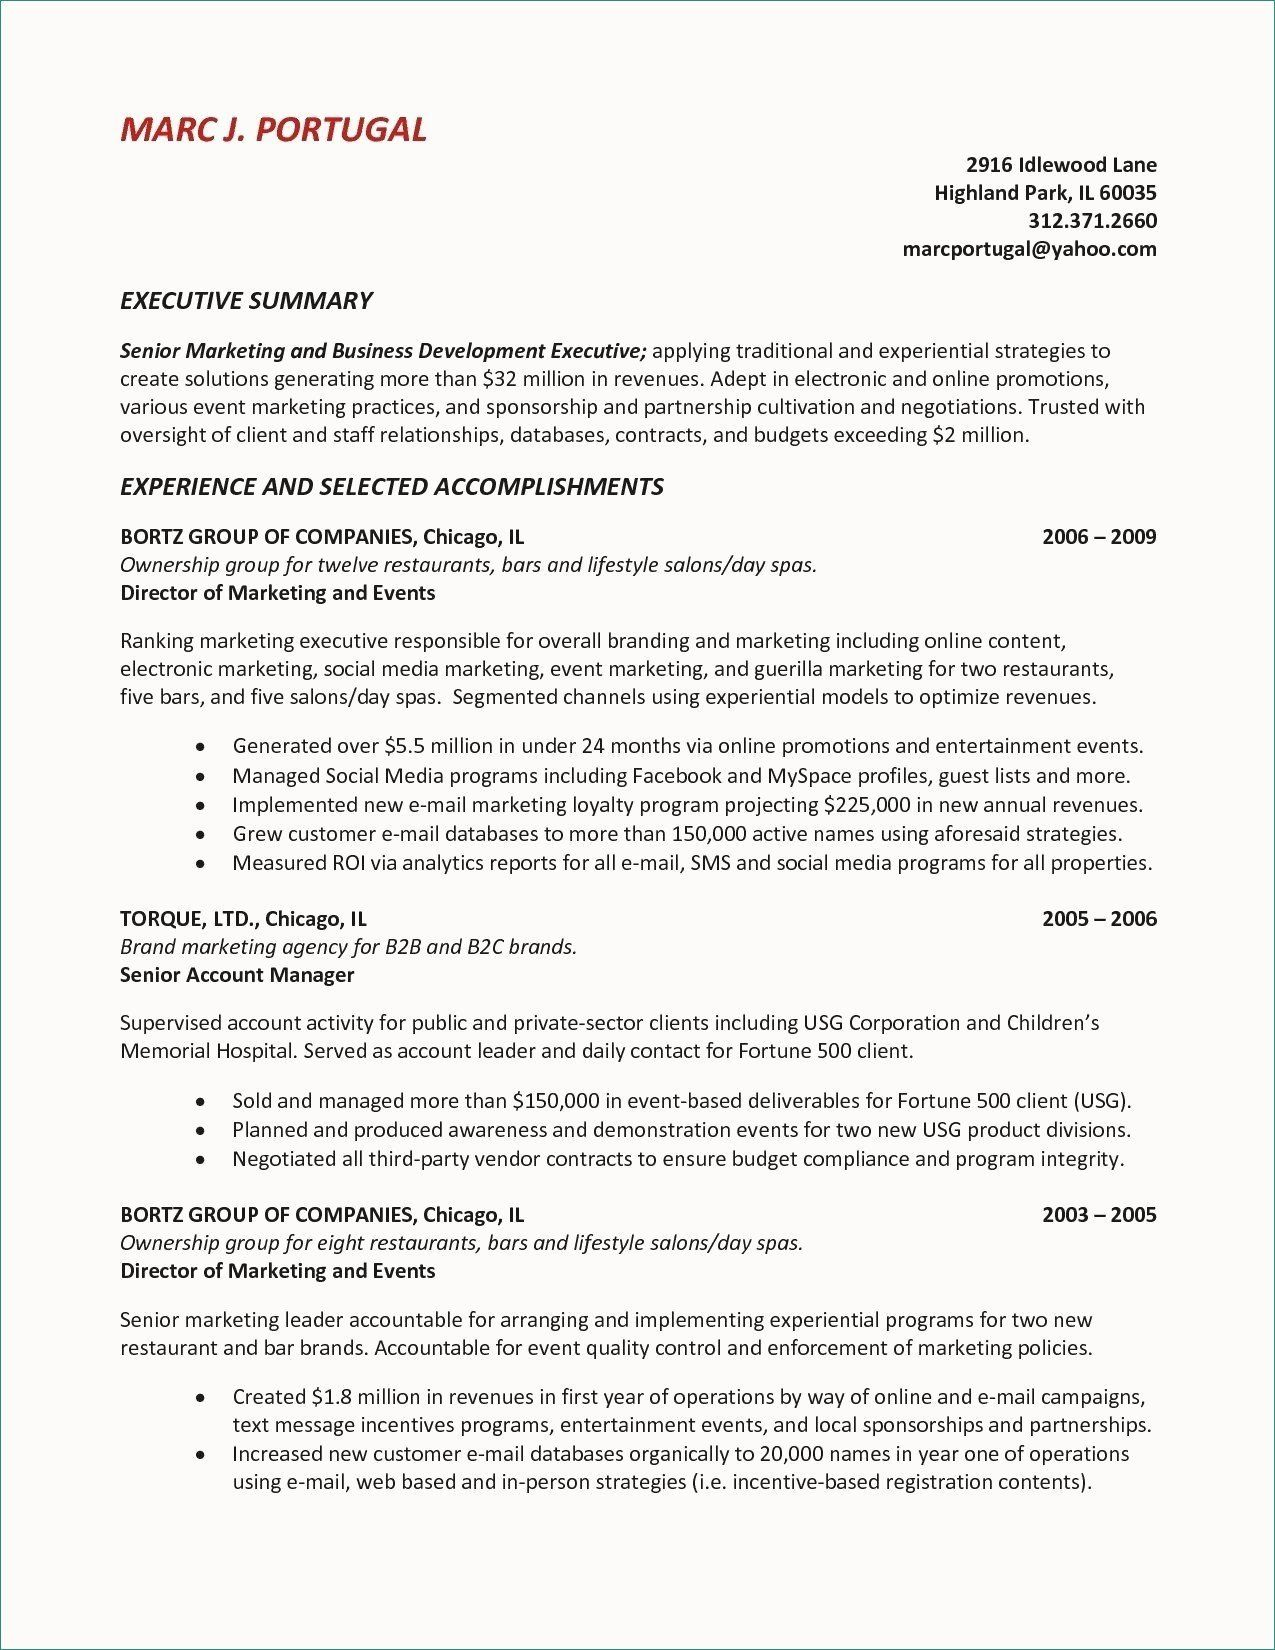 example of a marketing resume summary statement